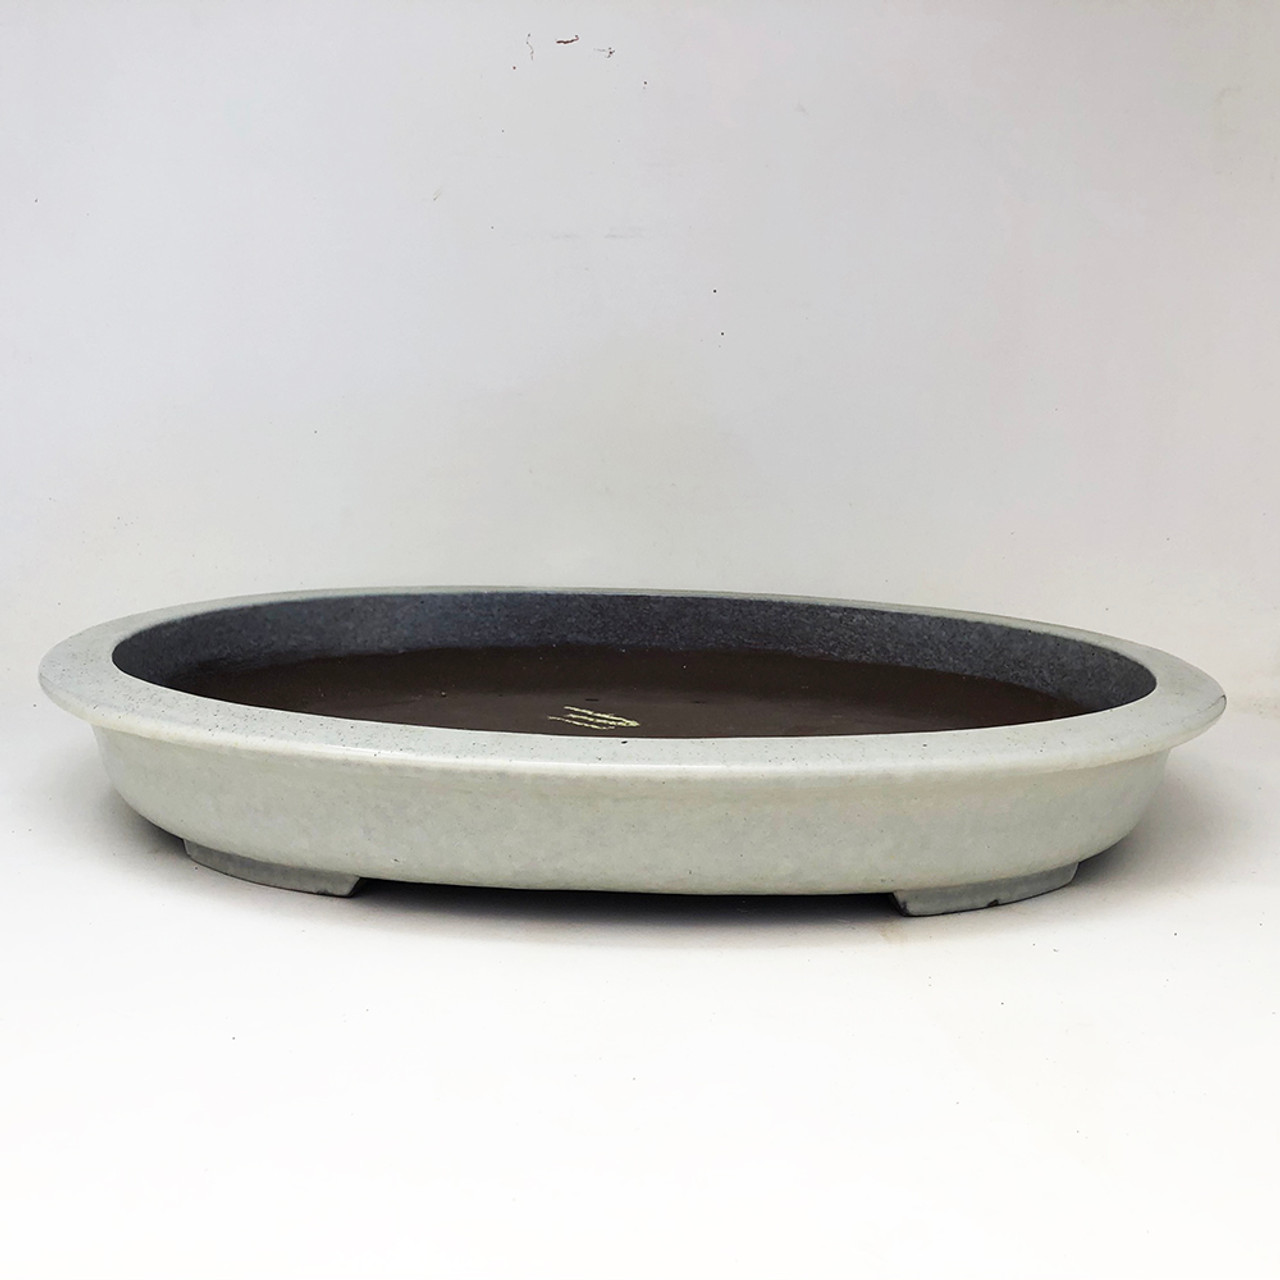 Large Vintage Cream Glazed Oval Bonsai Pot Bonsai Outlet Yx975